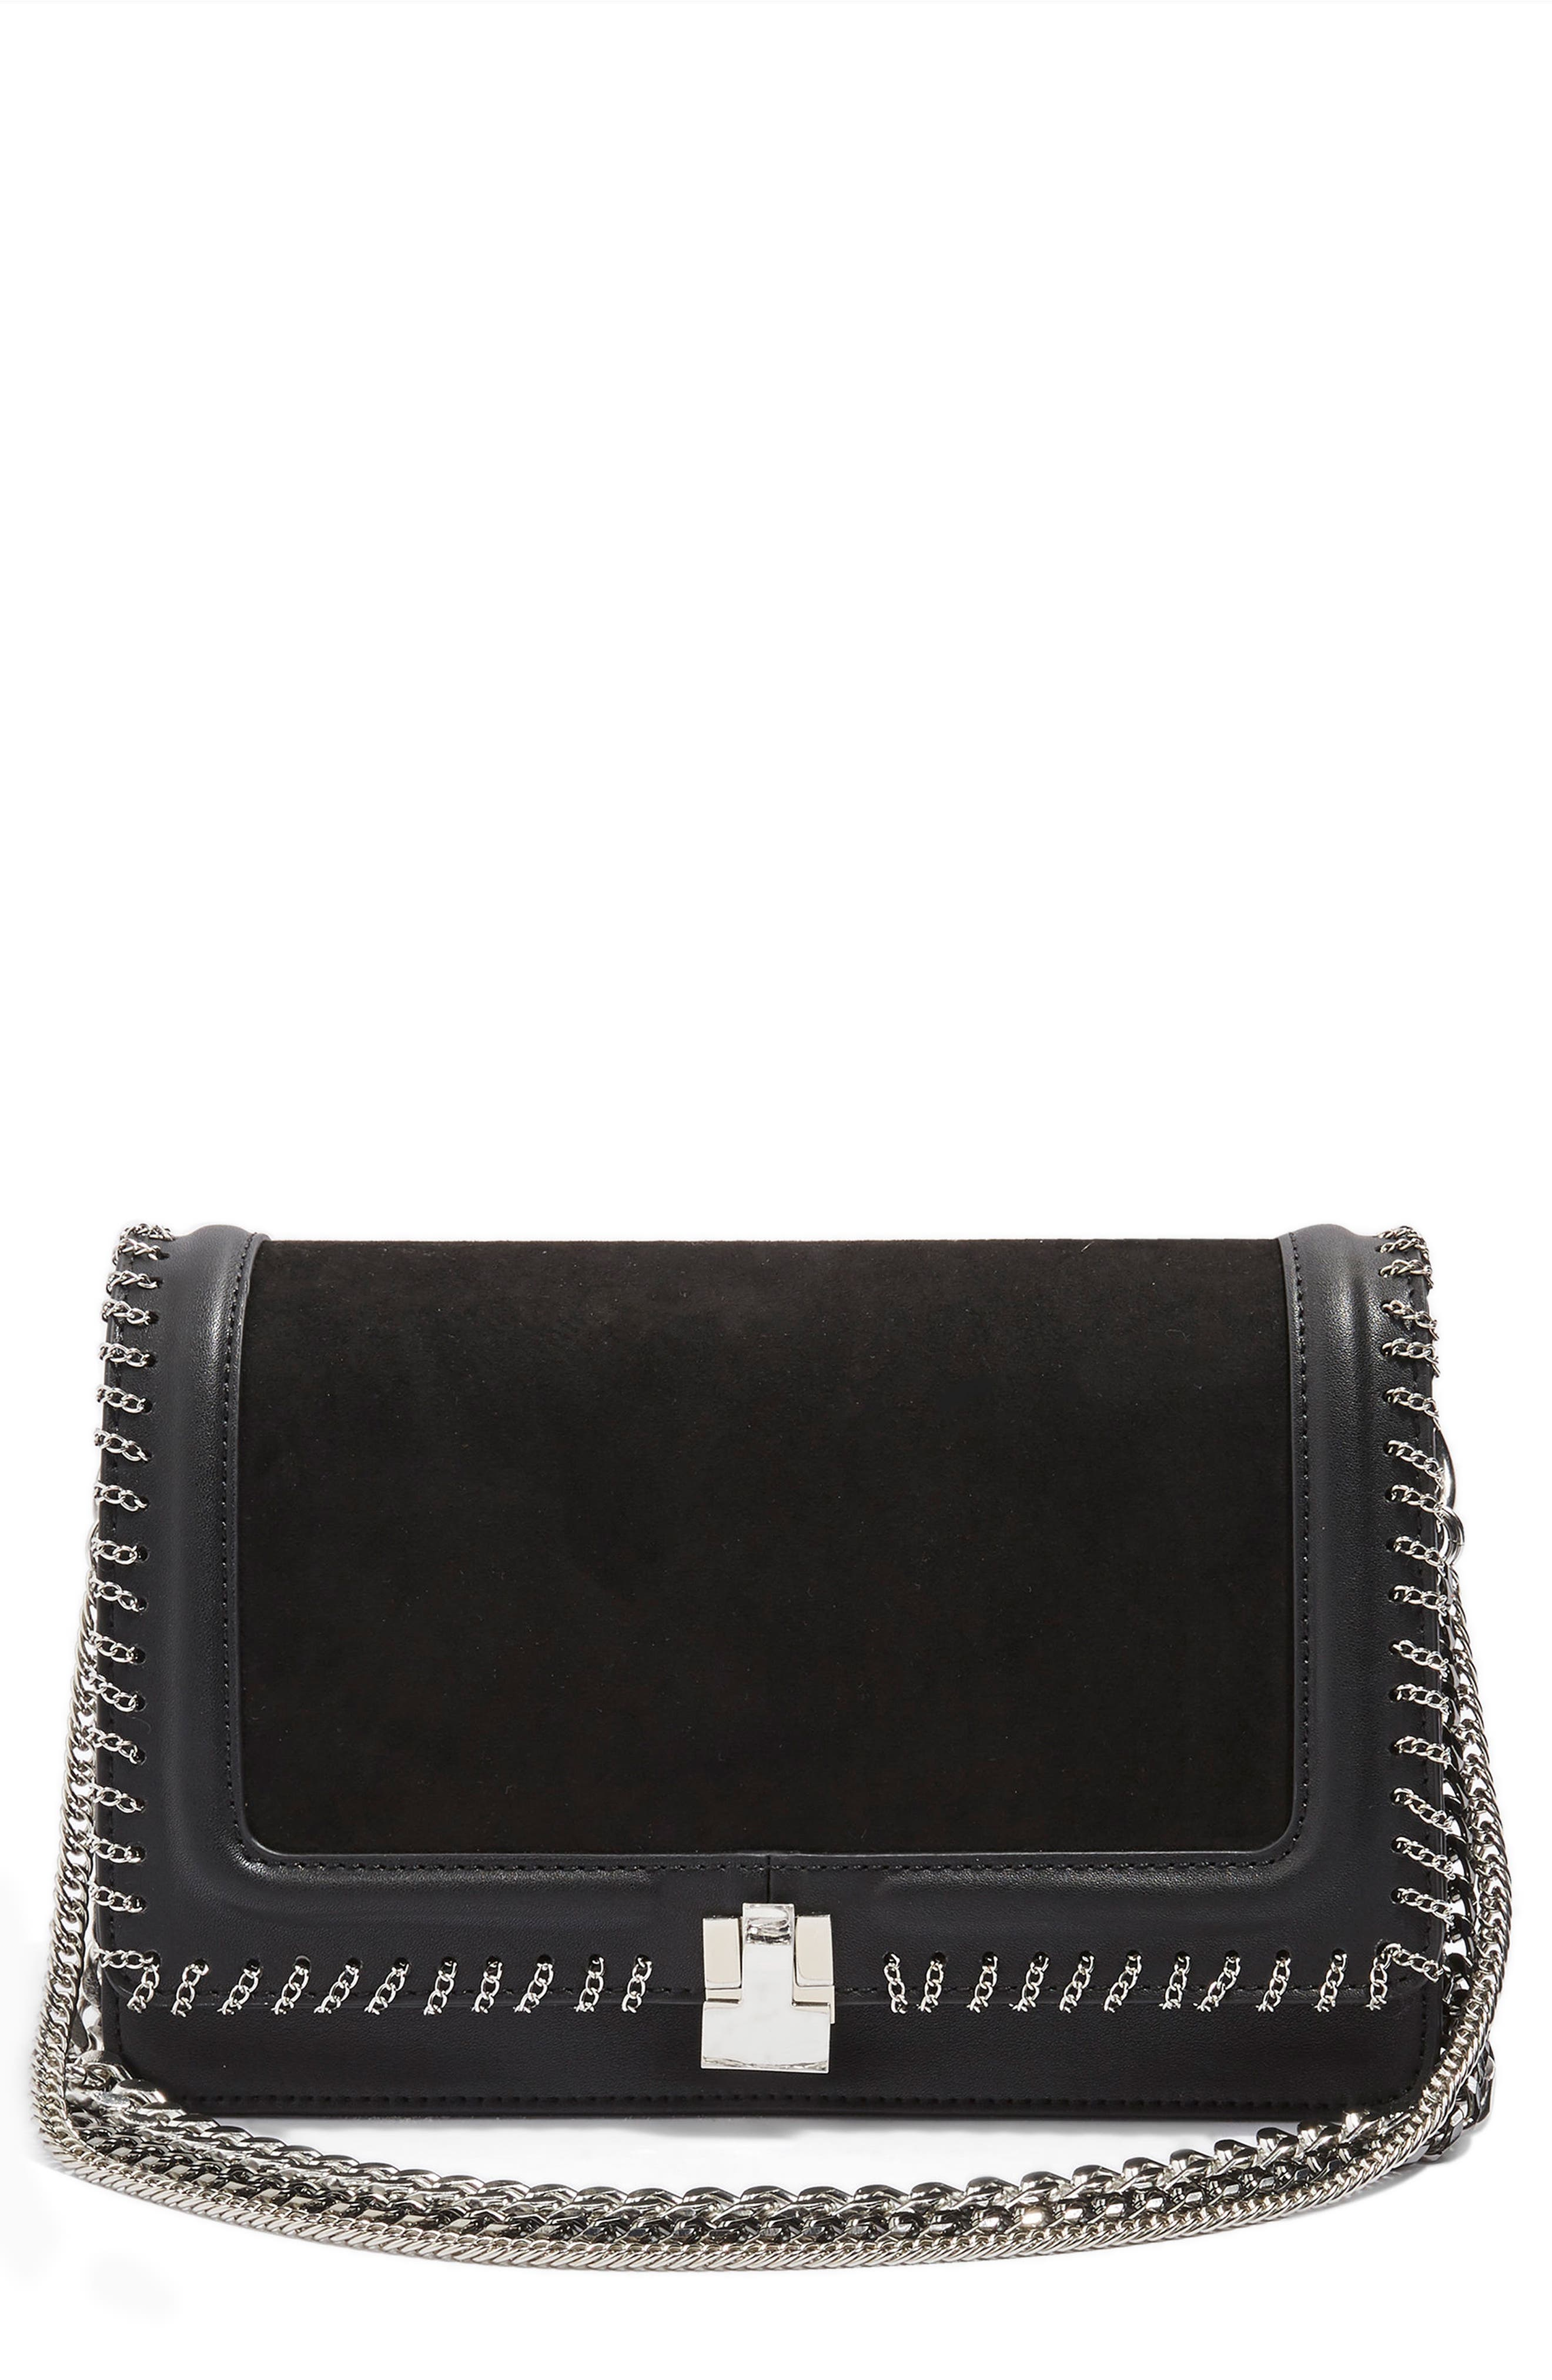 Chain Flap Shoulder Bag,                             Main thumbnail 1, color,                             Black Multi